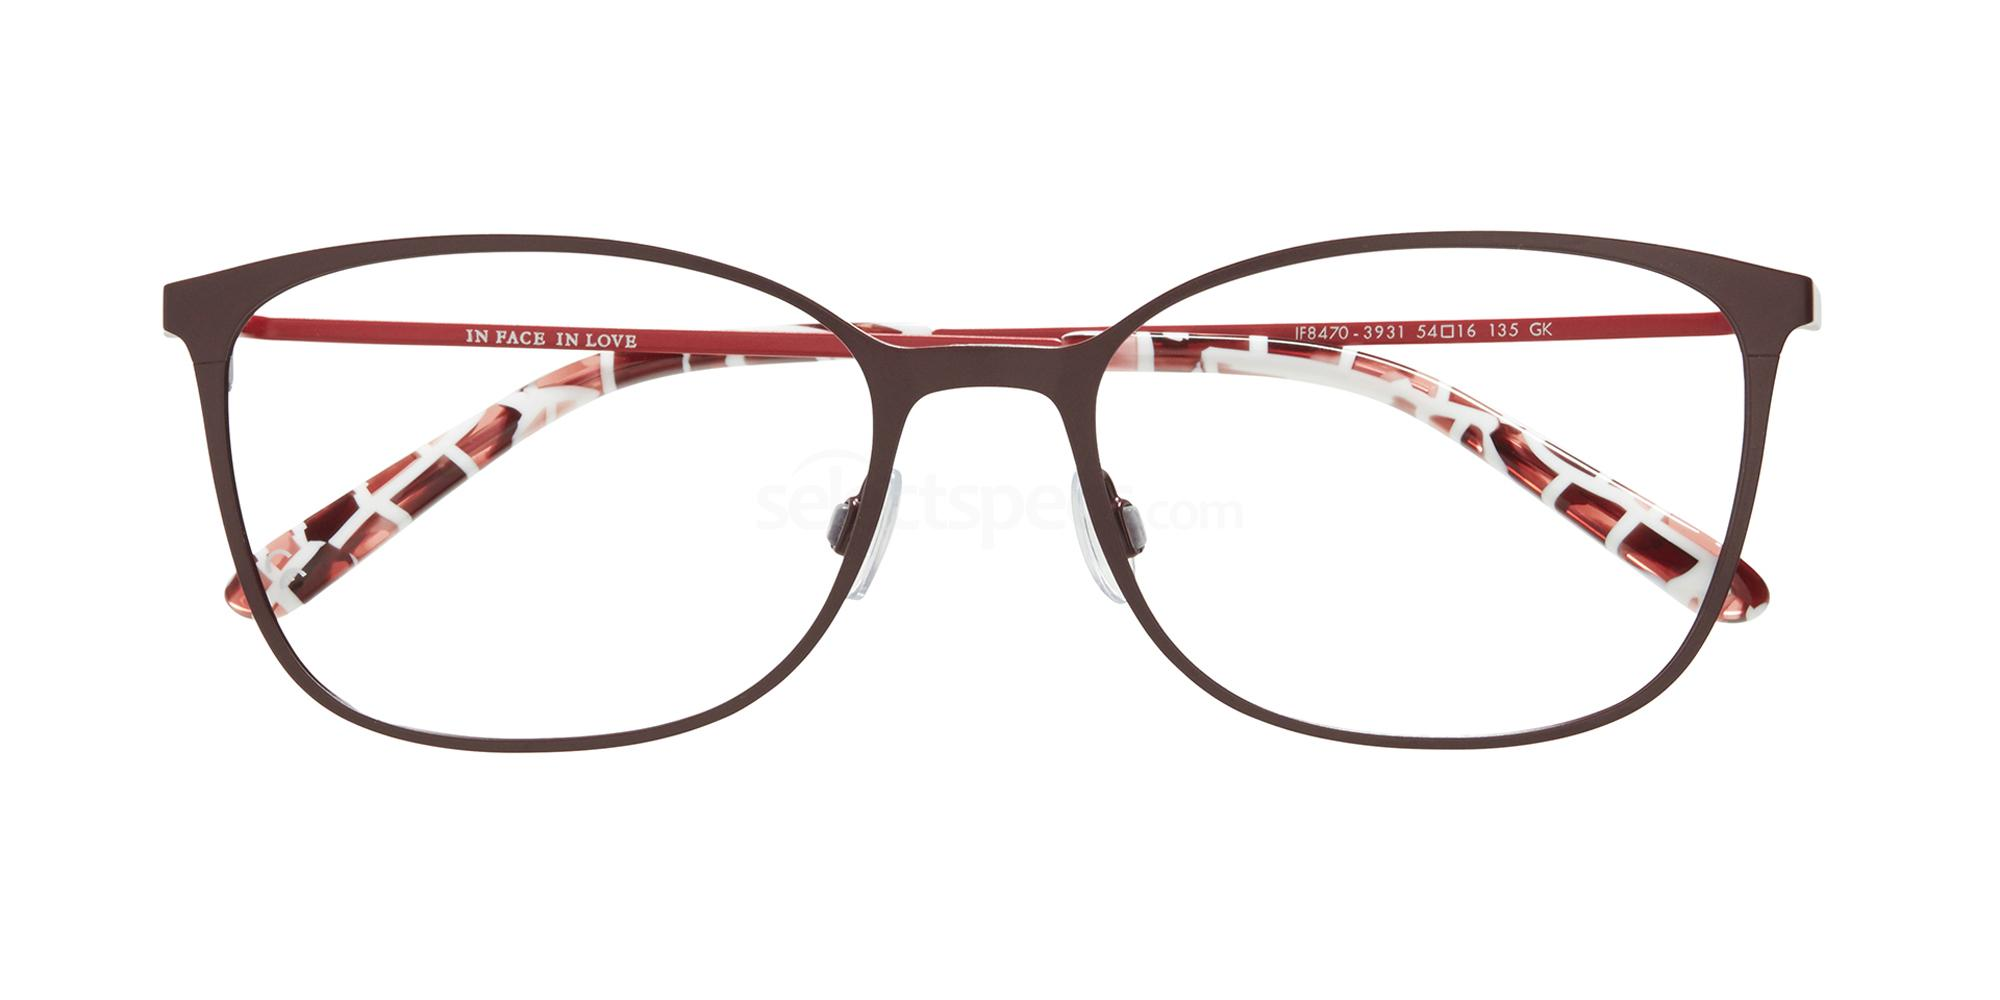 3931 IF8470 Glasses, Inface in Love